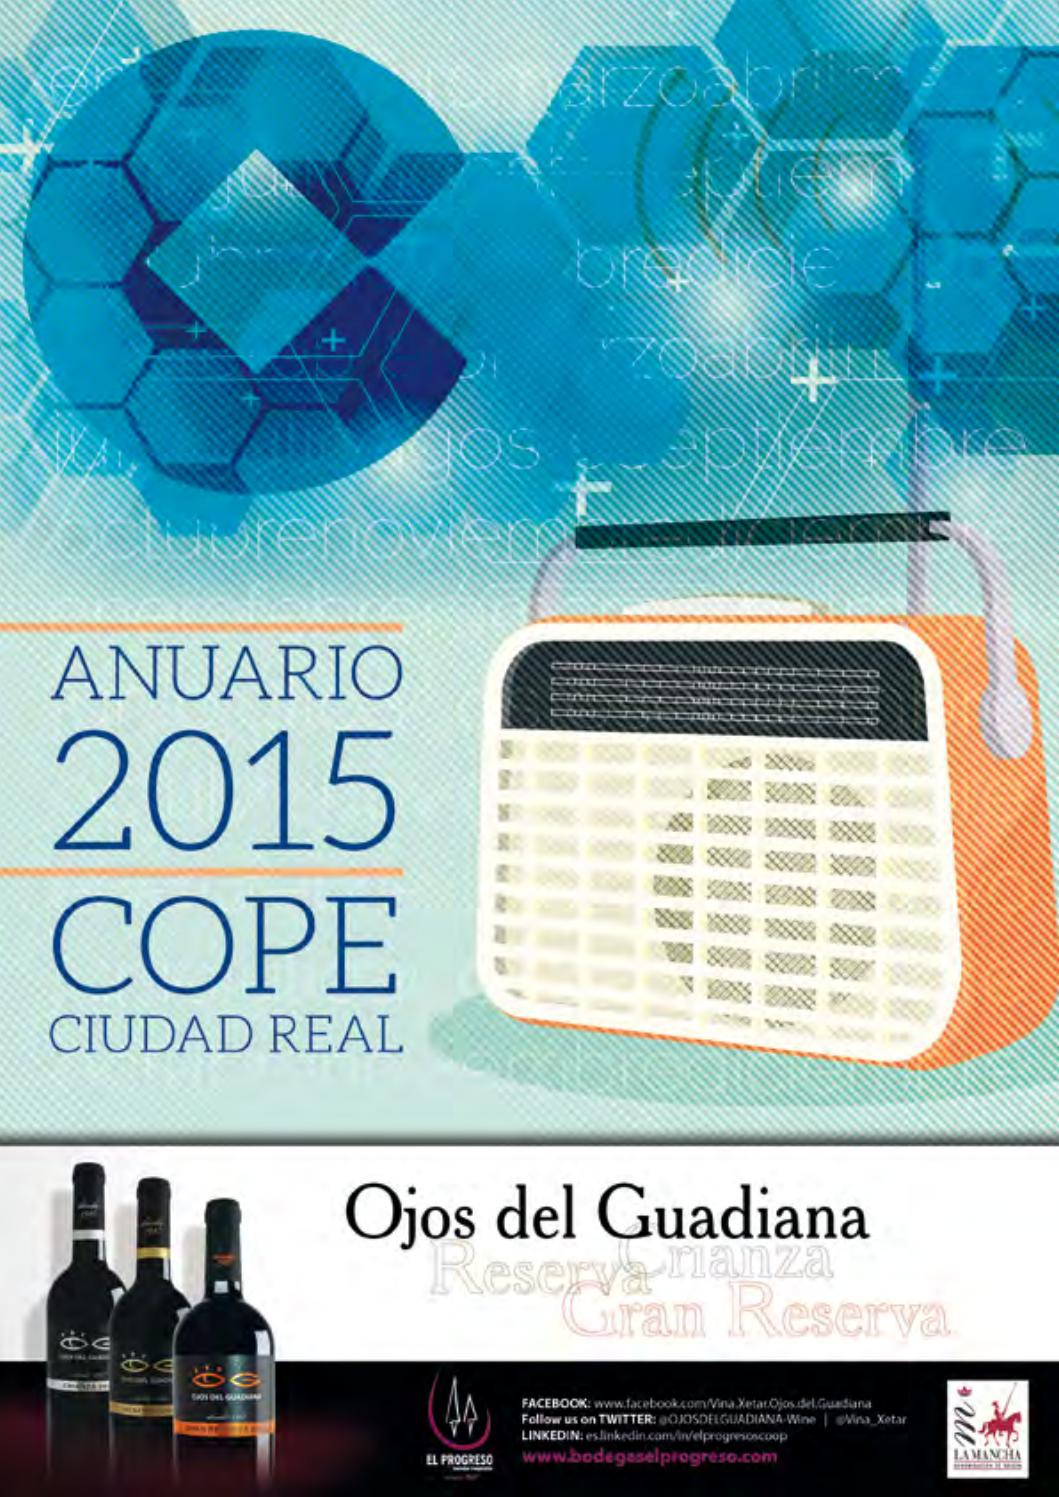 Anuario 2015 COPE CIUDAD REAL by 3D3 Editores, S.L. - issuu